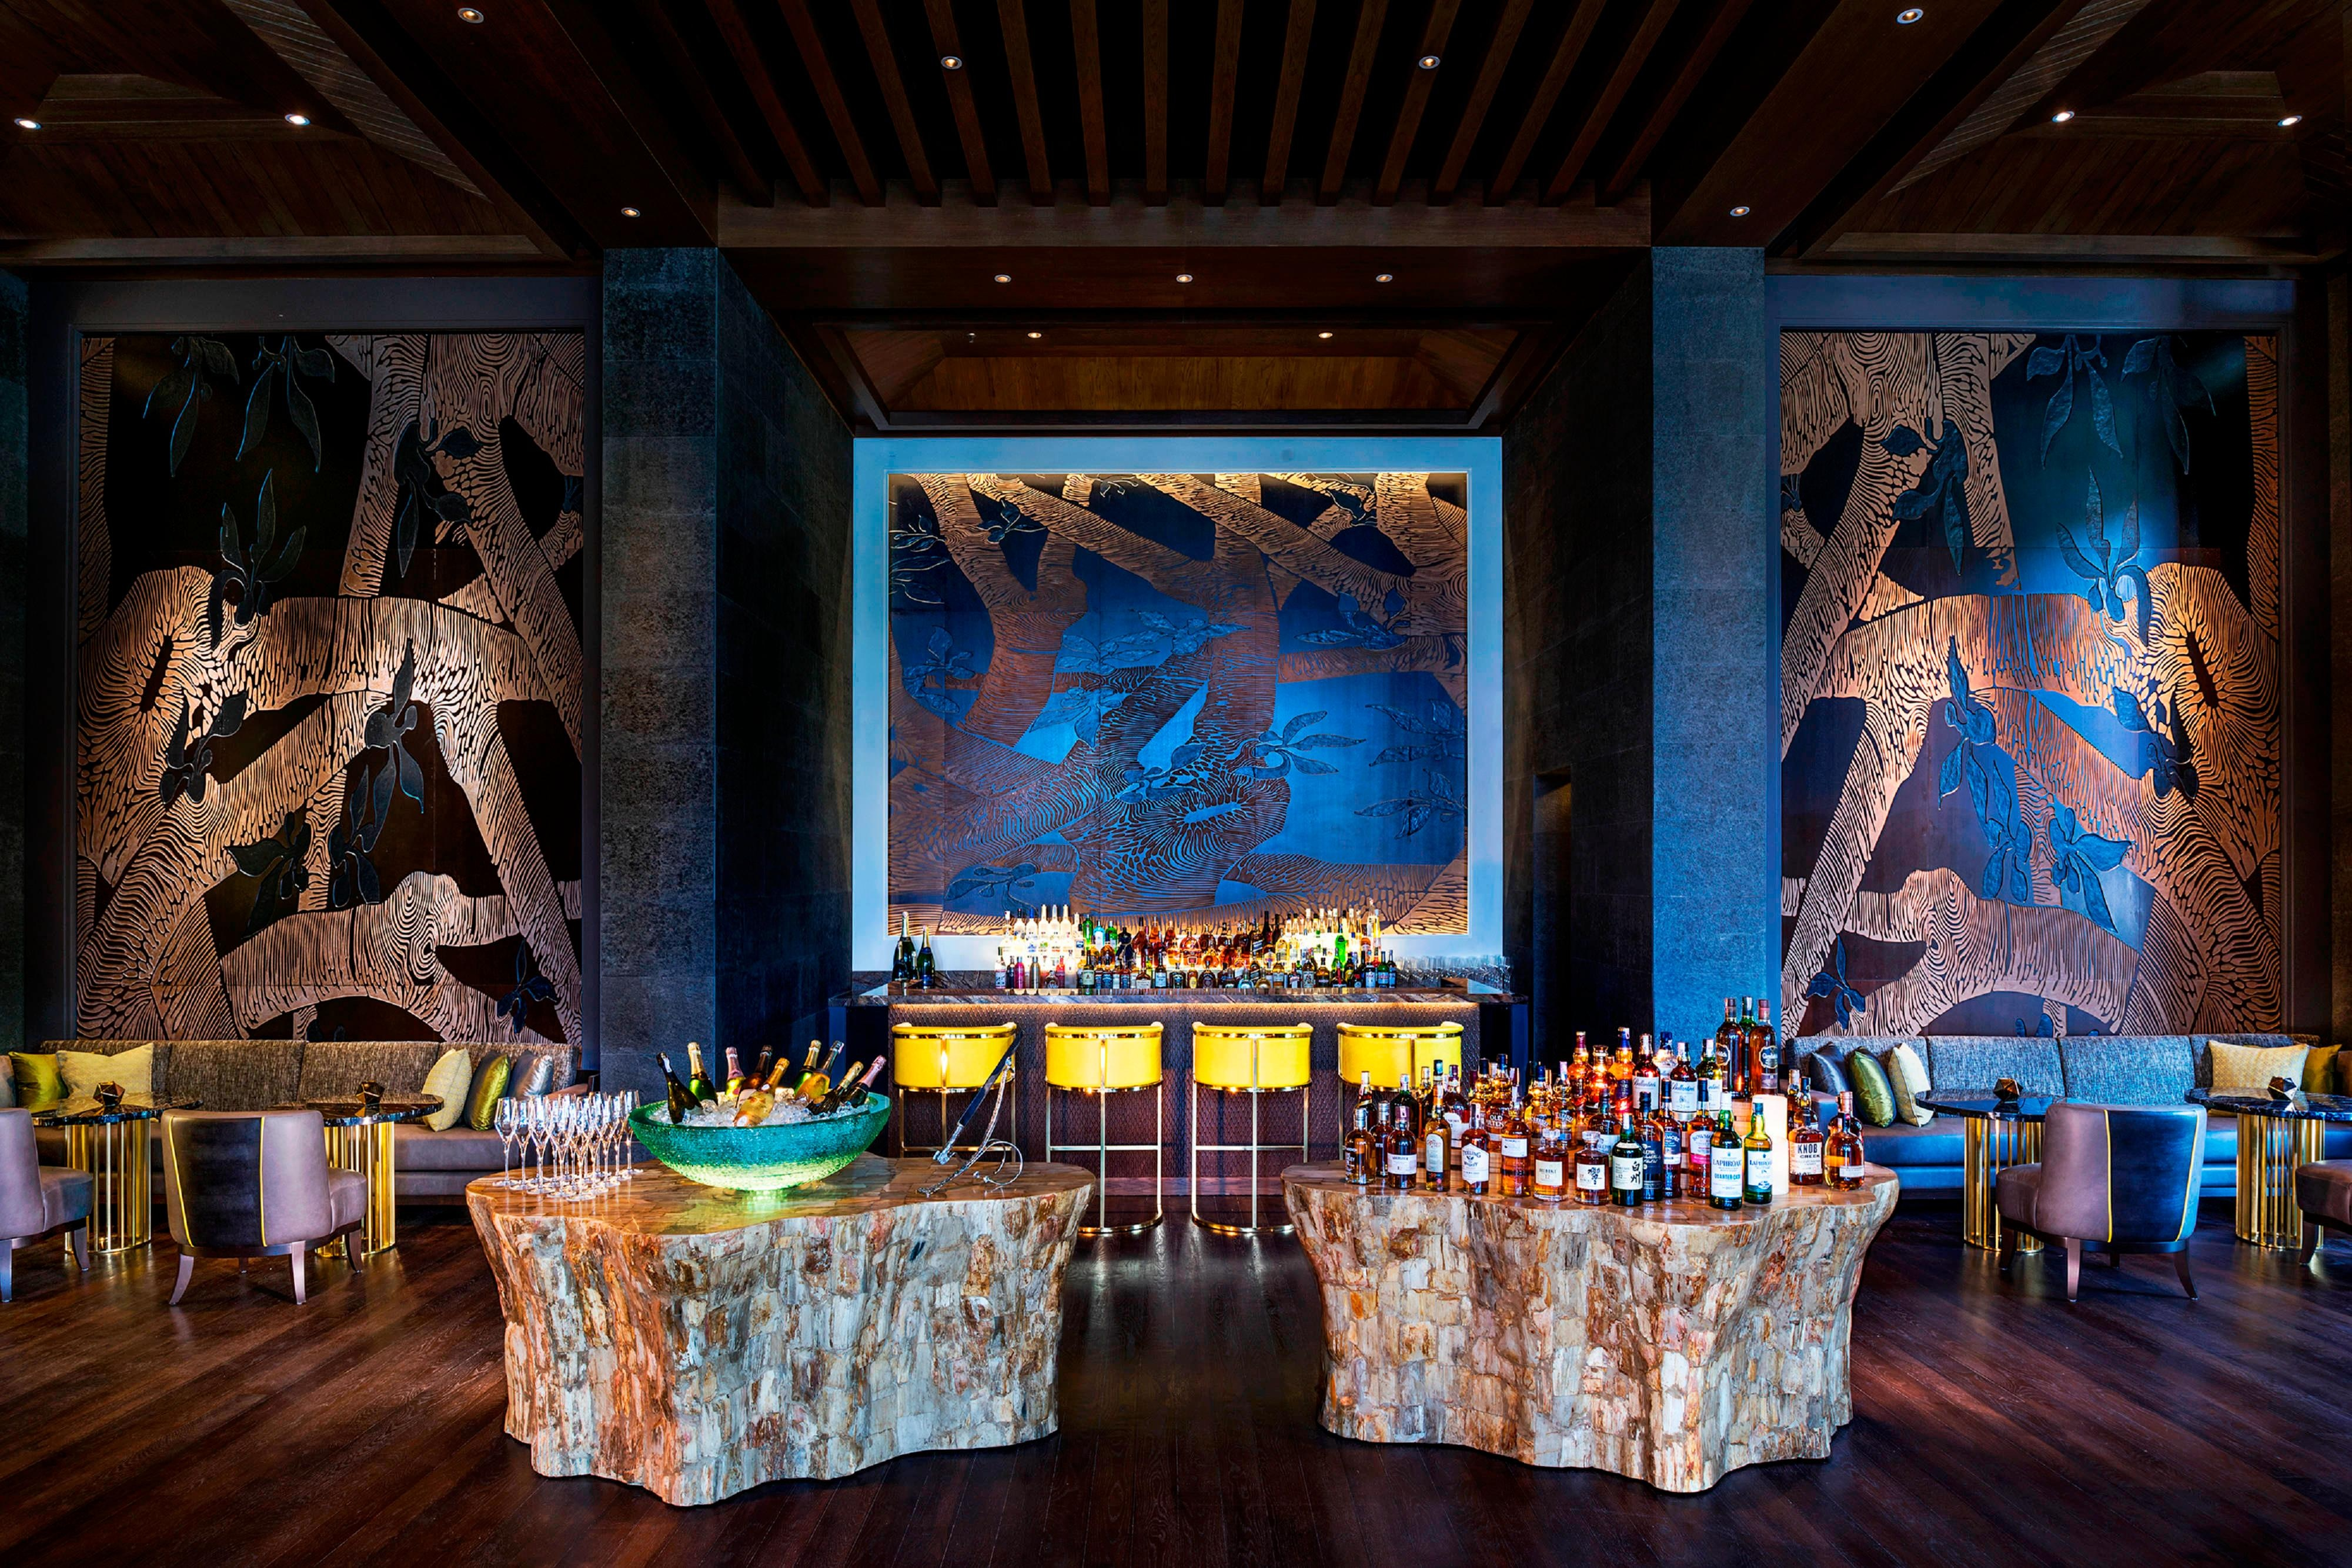 The St Regis Bar